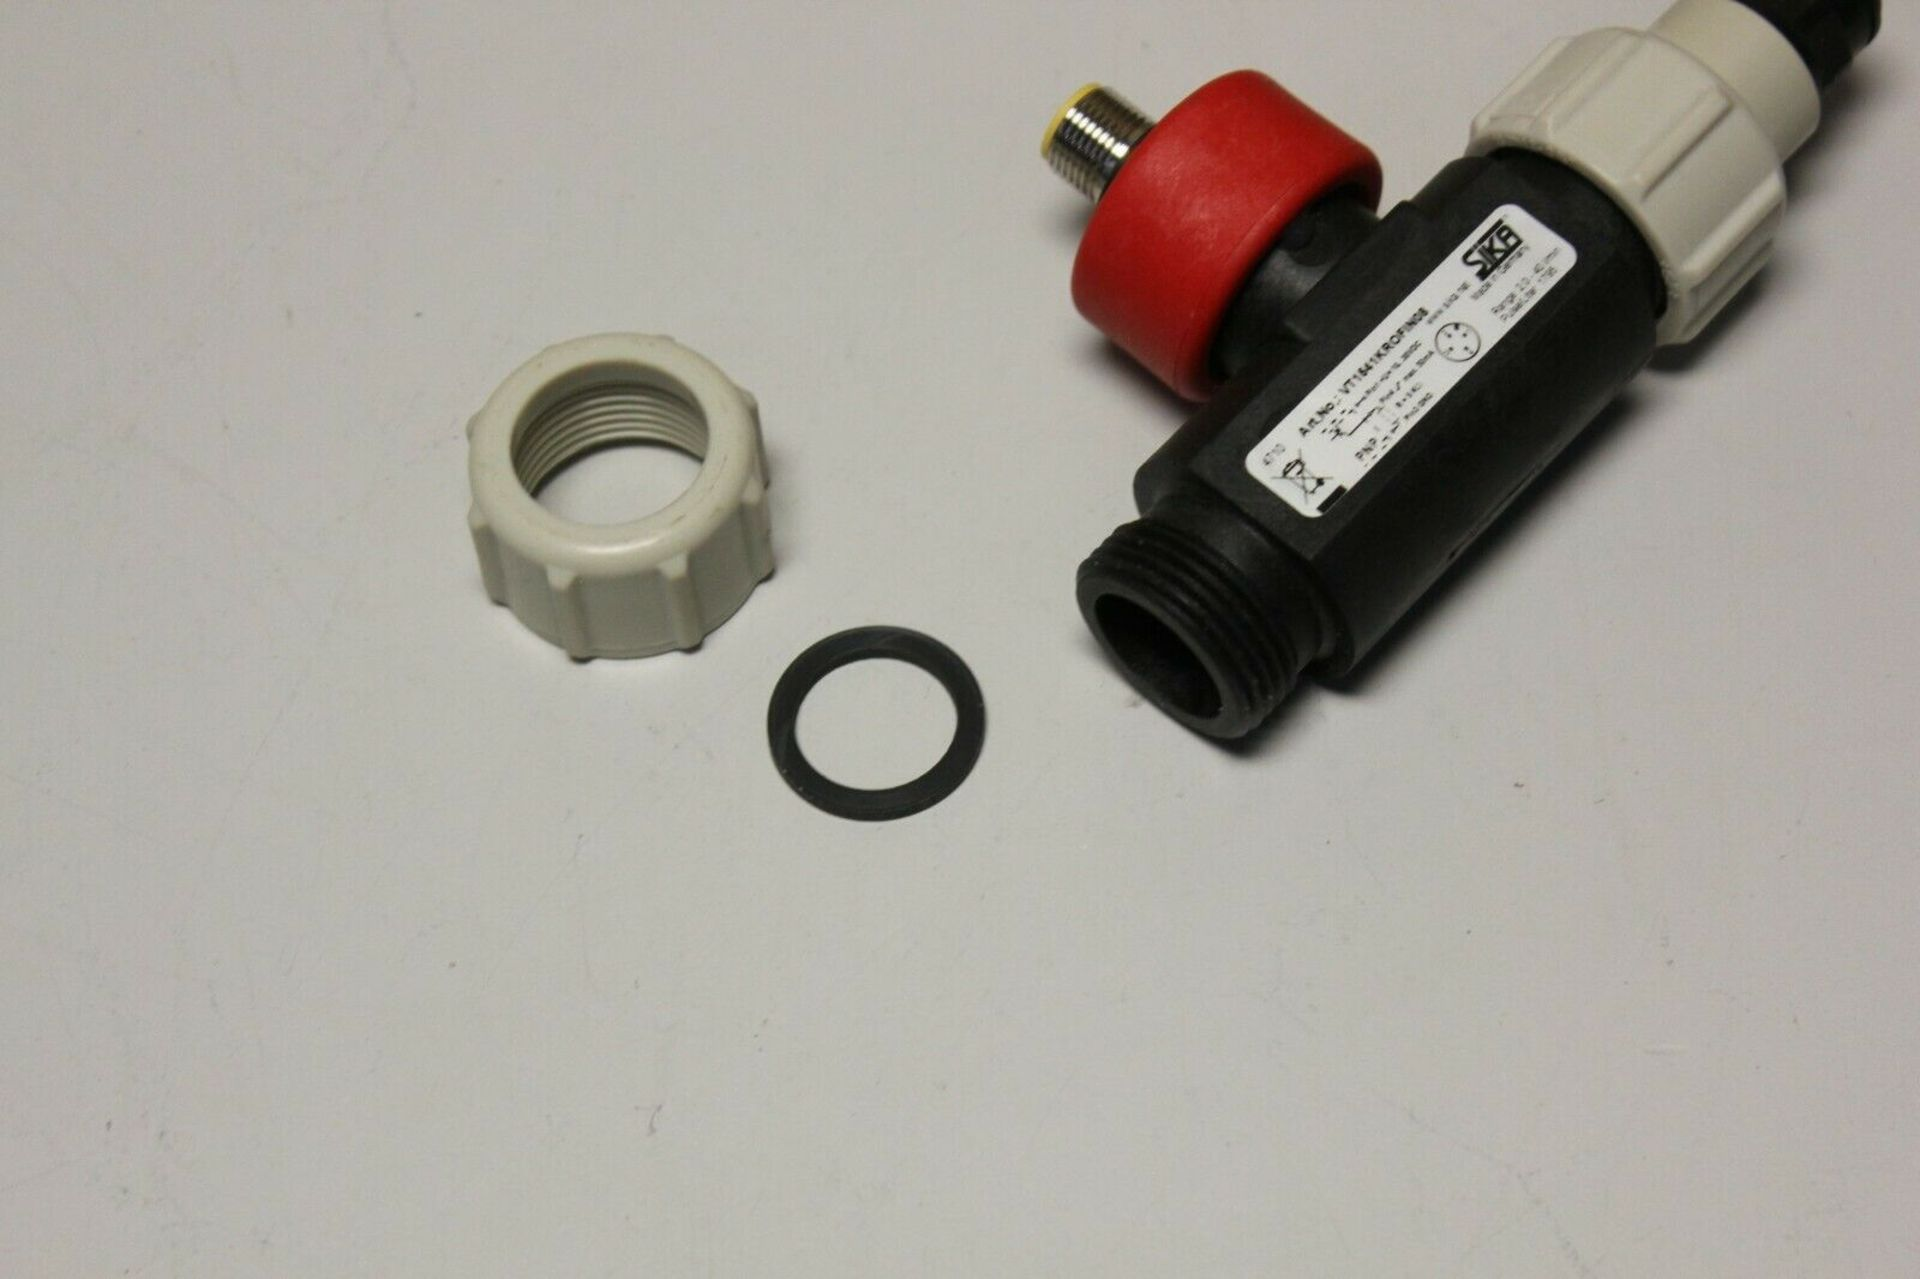 SIKA TURBINE FLOW SENSOR WITH CABLE - Image 5 of 7